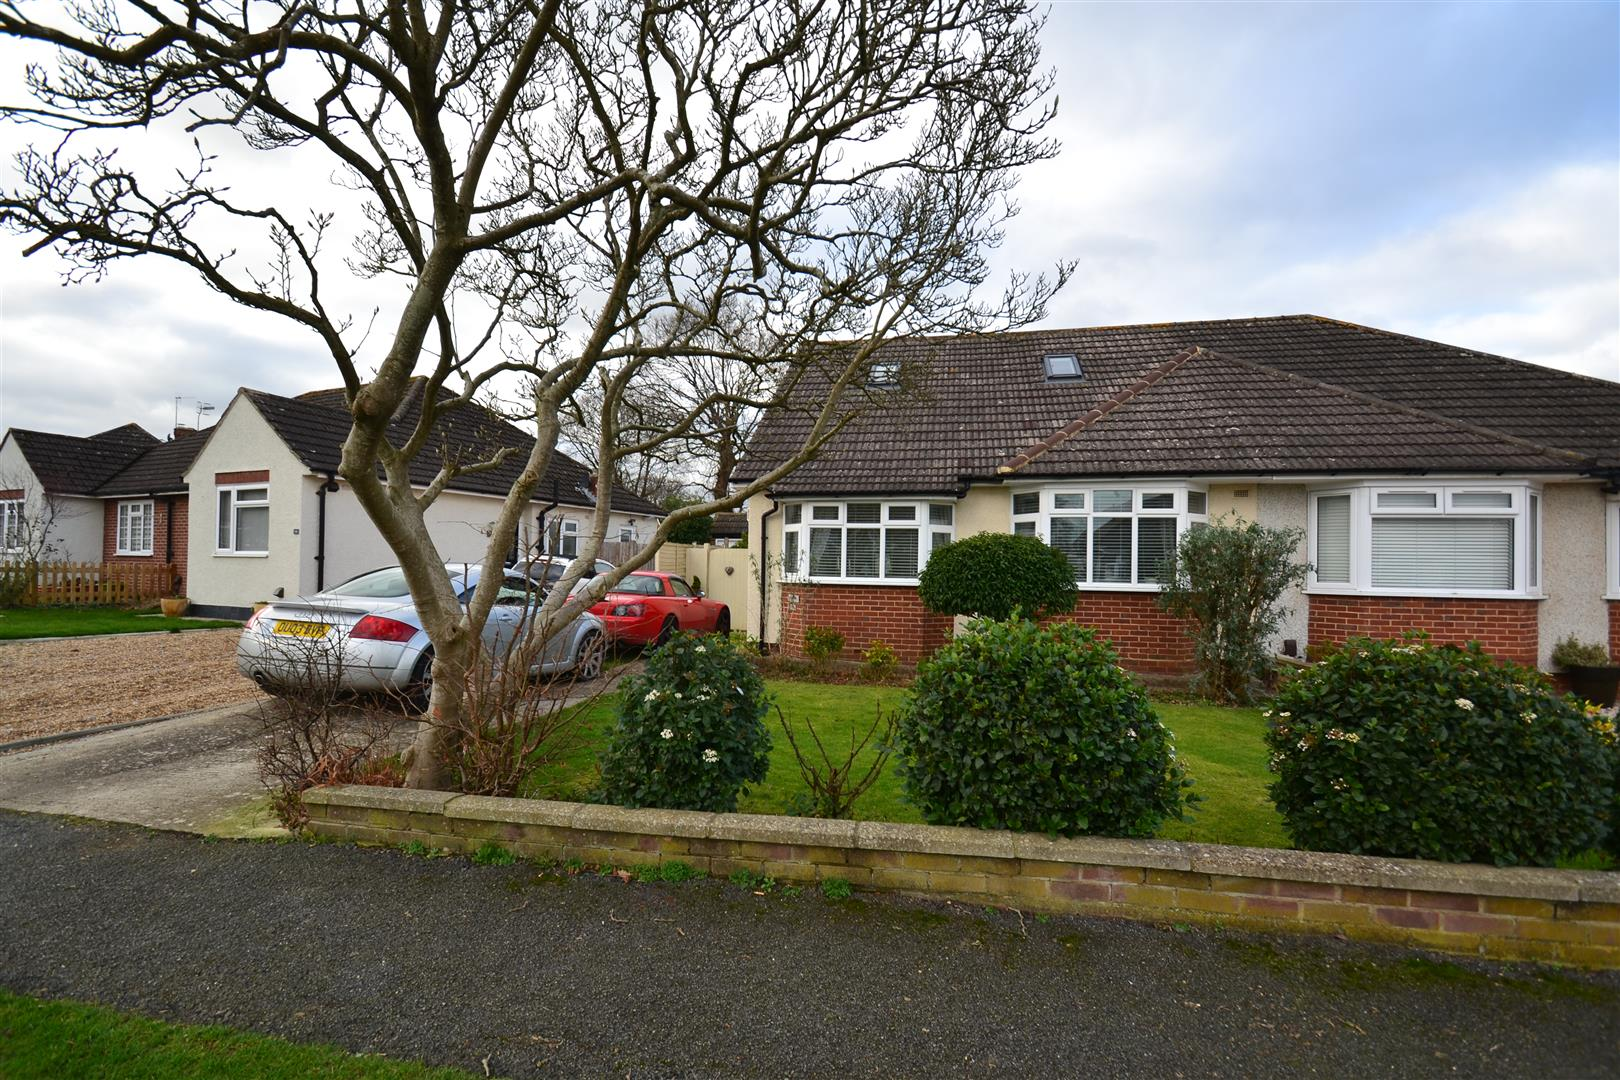 3 Bedrooms Semi Detached Bungalow for sale in Blundell Avenue, Horley